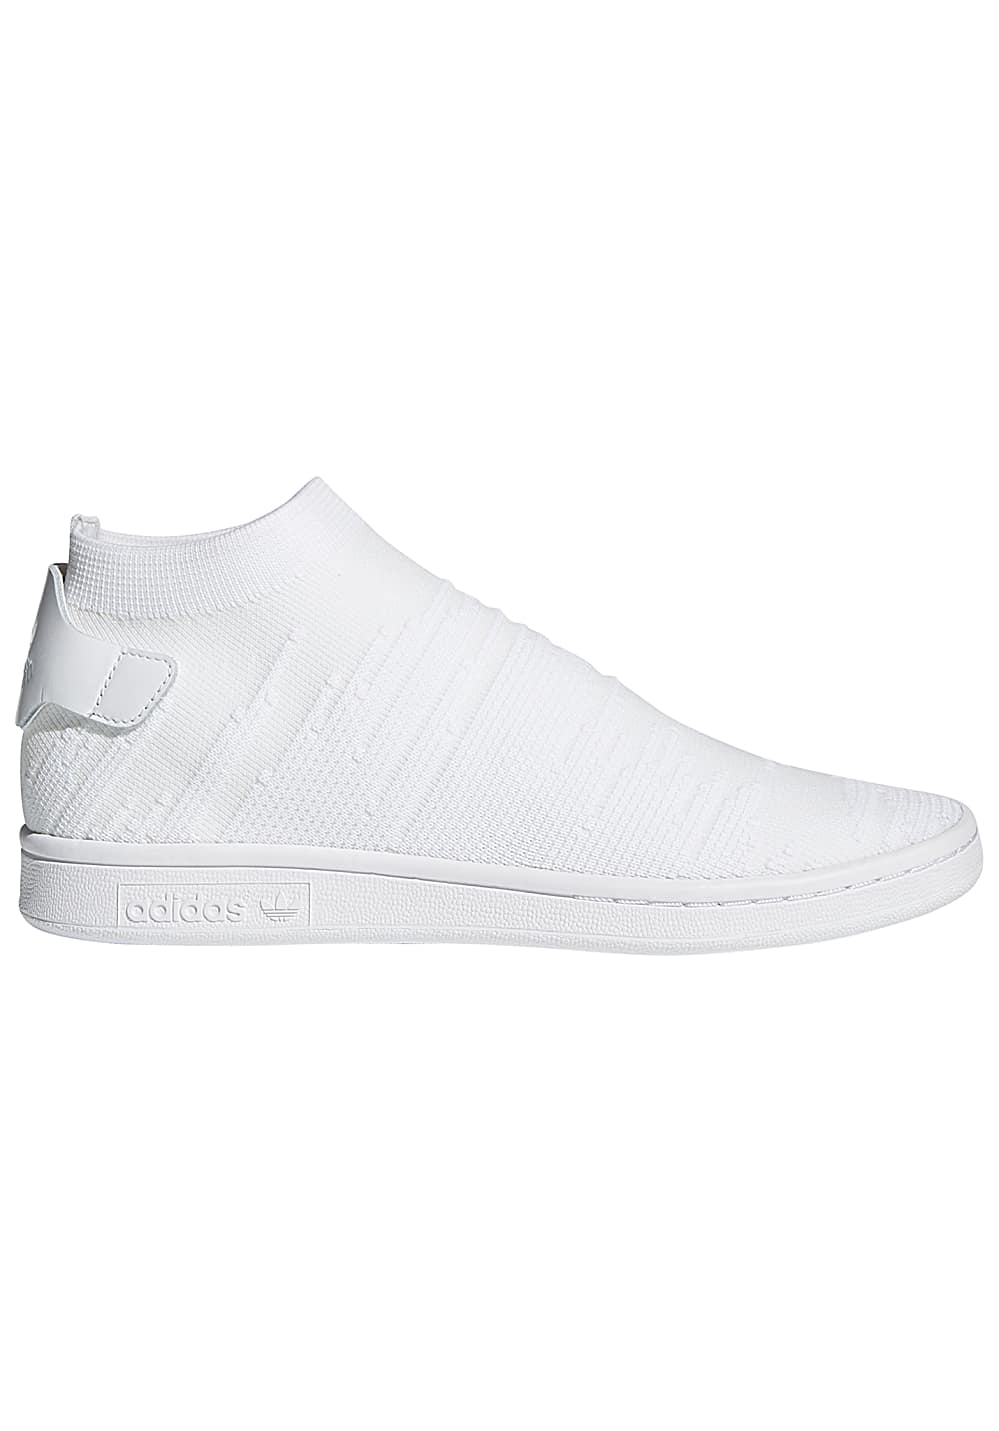 ADIDAS ORIGINALS Stan Smith Sock Primeknit Sneakers for Women White